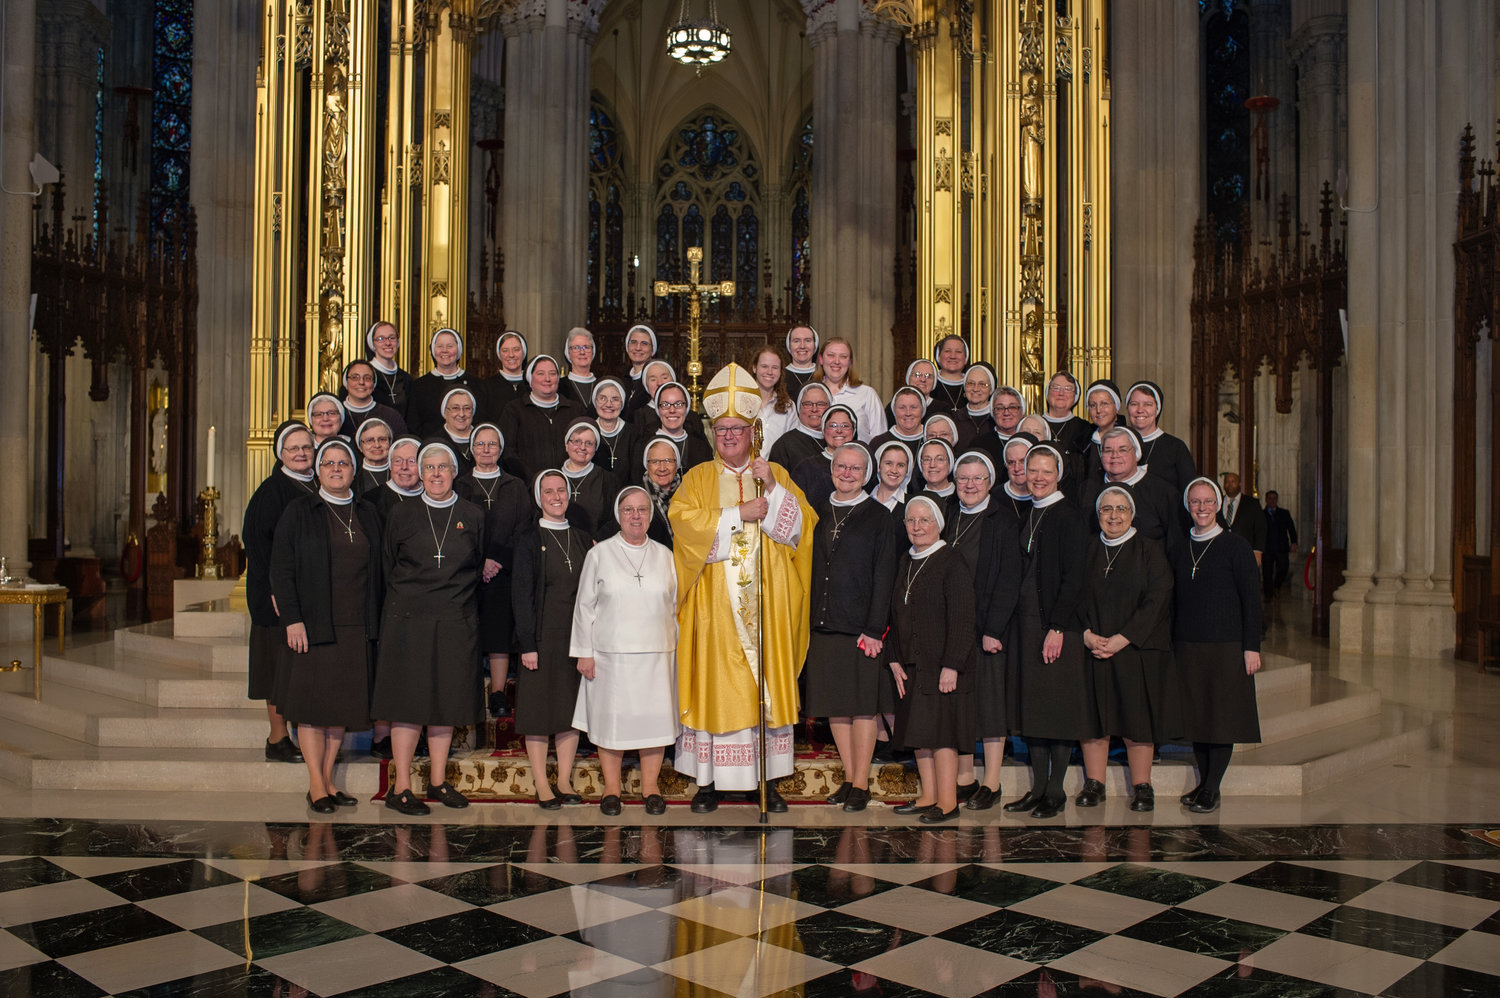 Apostles of the Sacred Heart of Jesus sisters who minister in New York and Connecticut gather with Cardinal Dolan at St. Patrick's Cathedral.